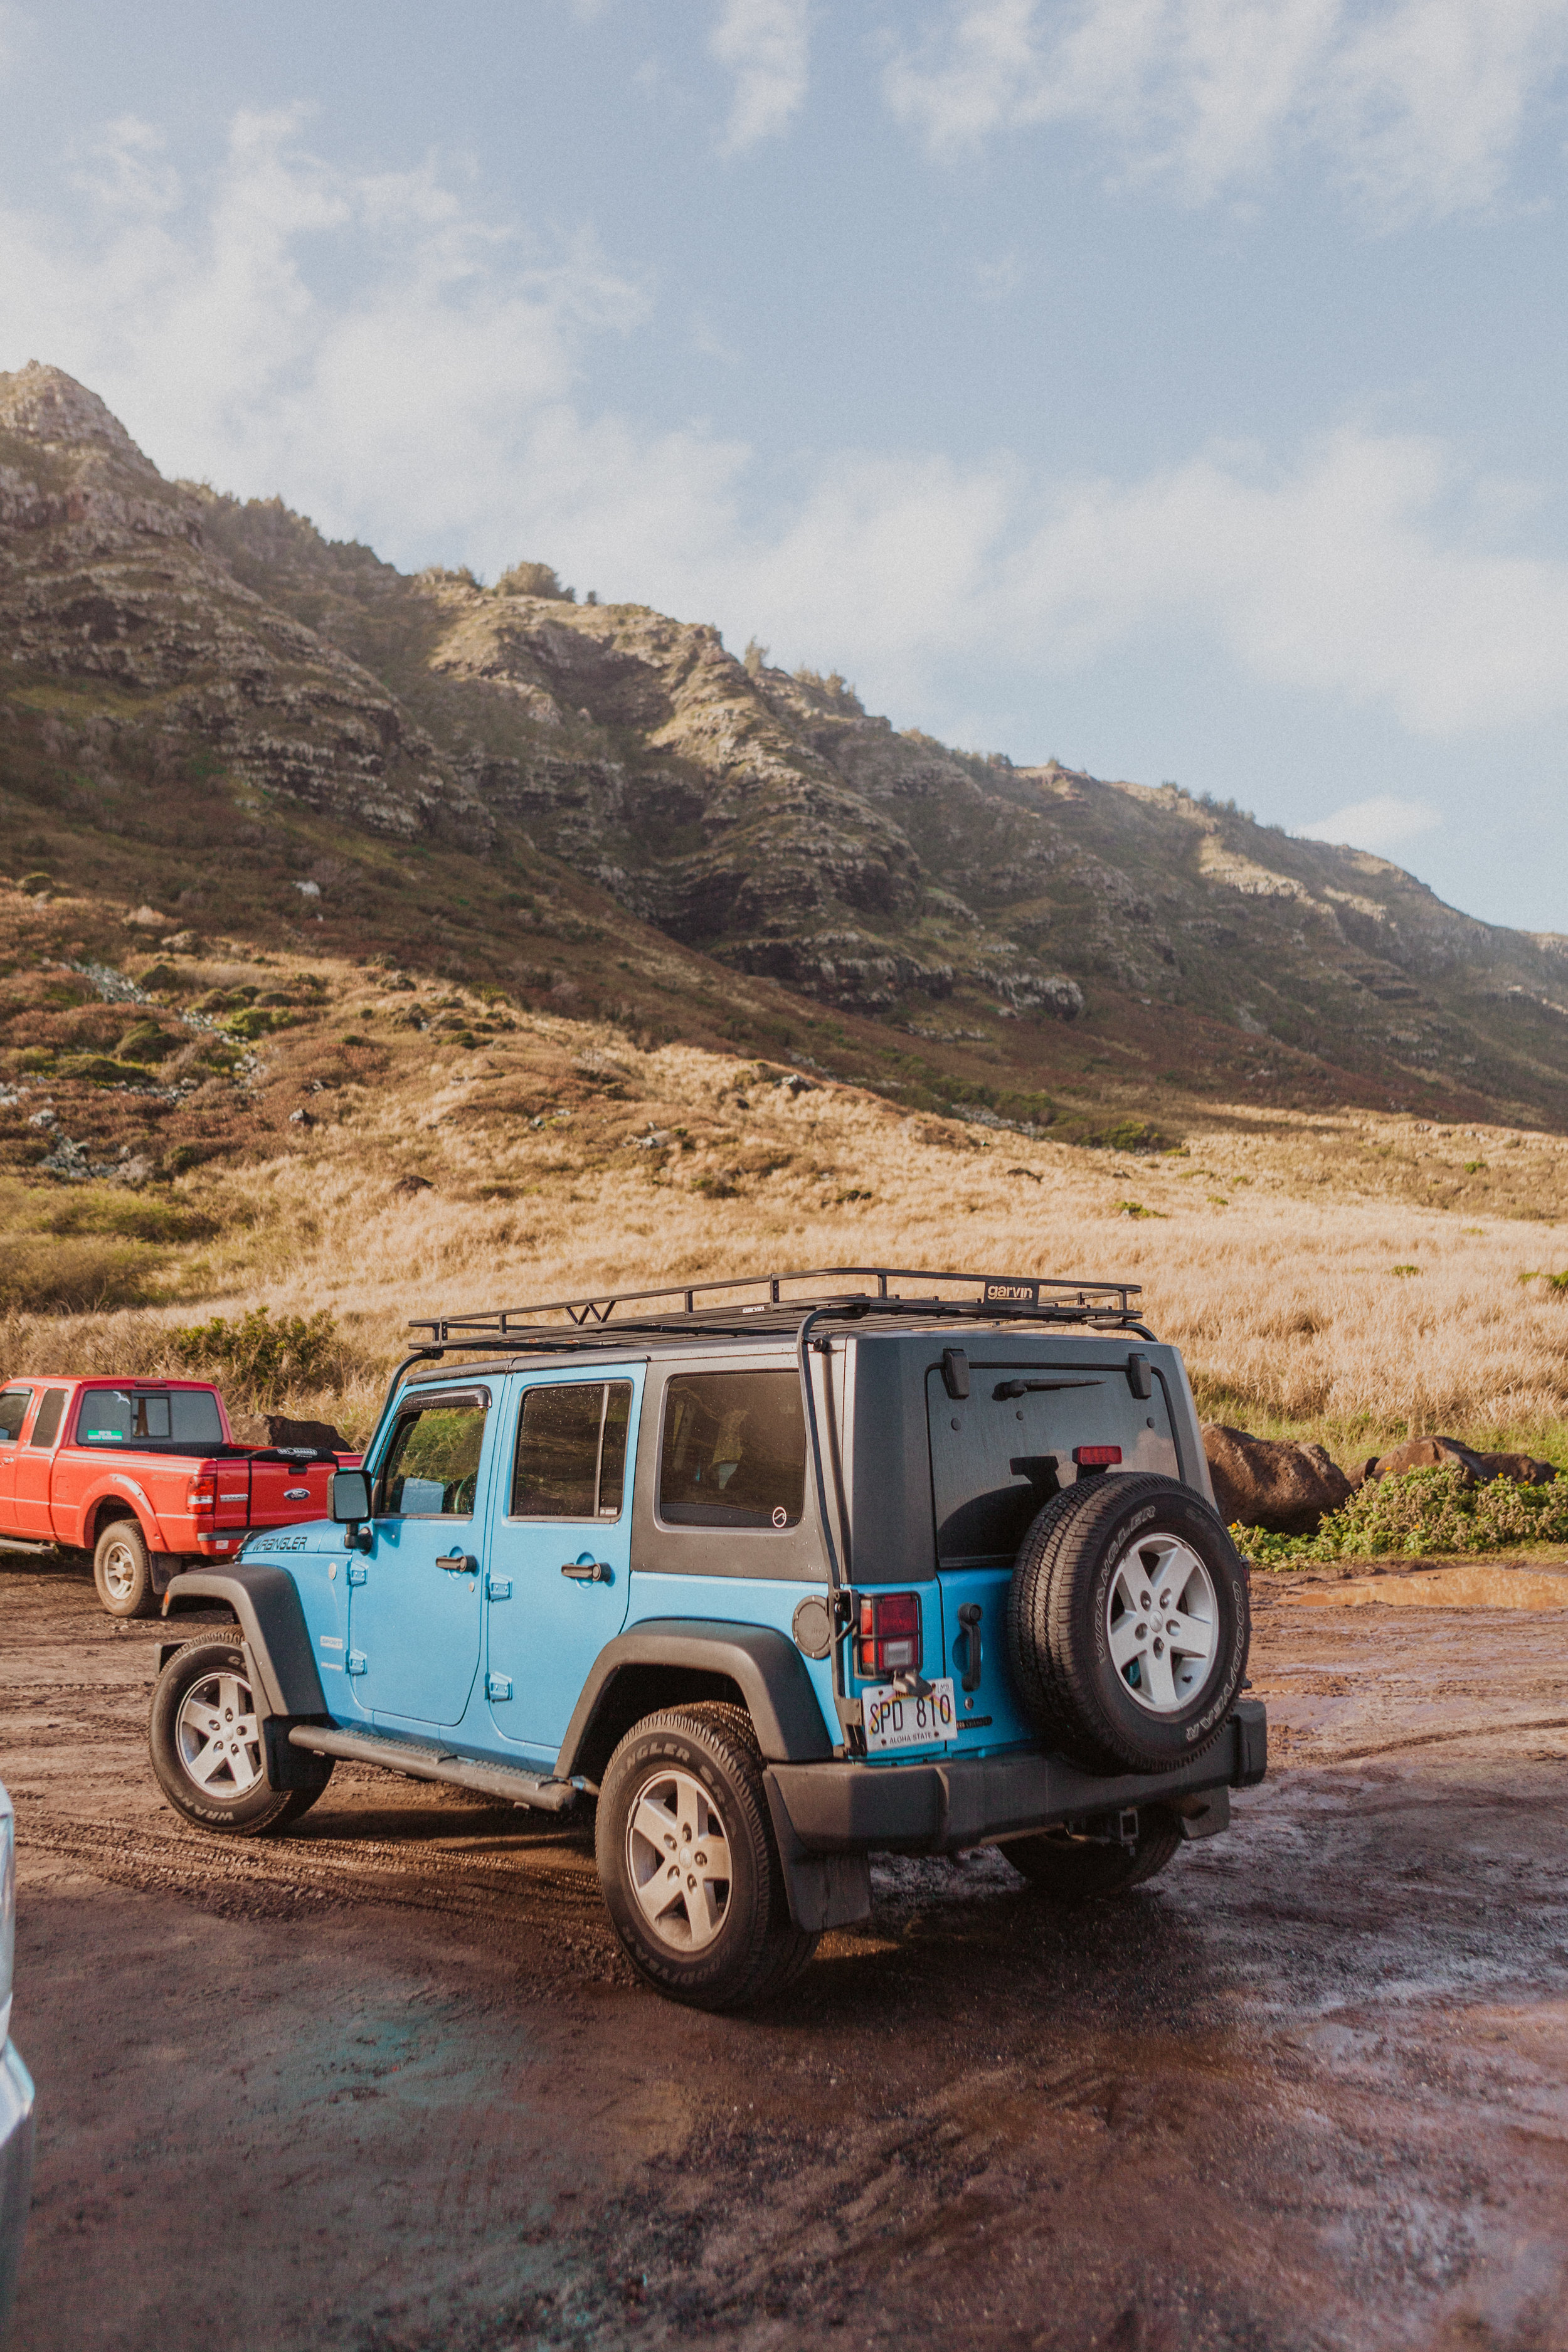 exploring in a jeep